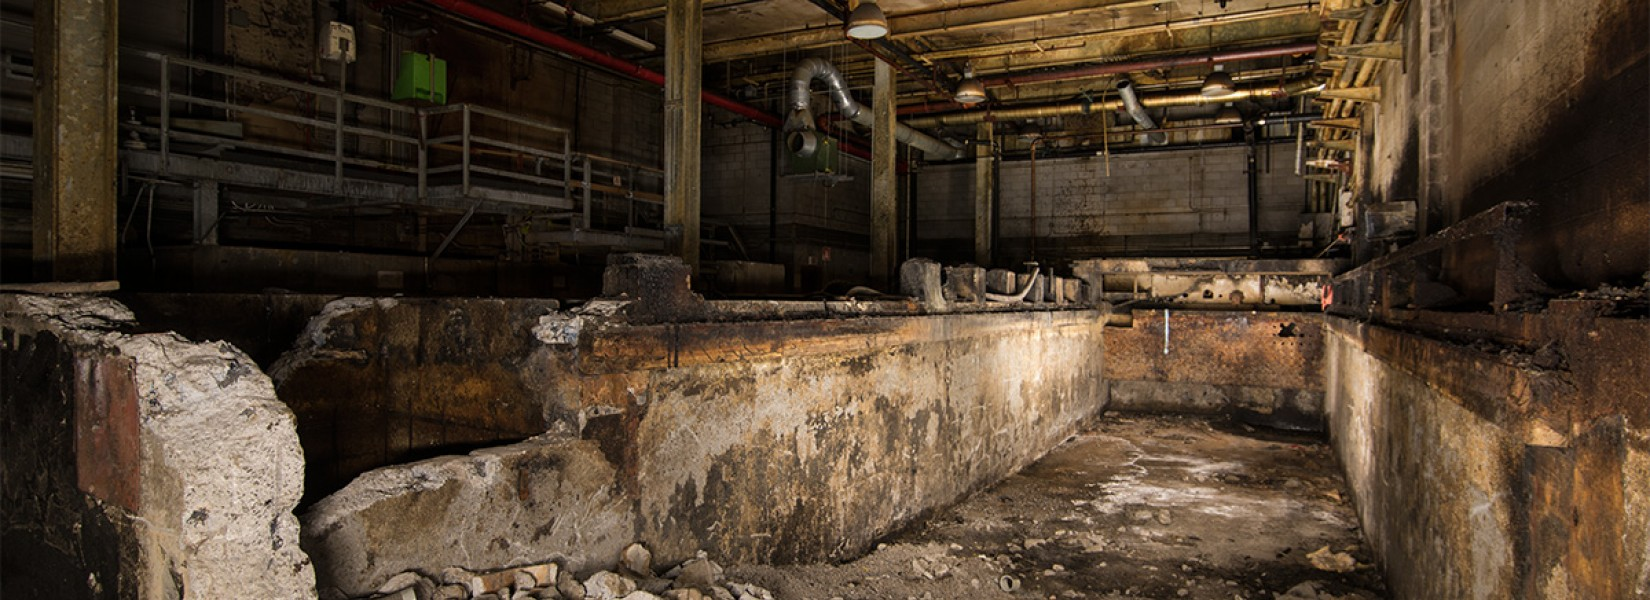 The old vegetable oil plant